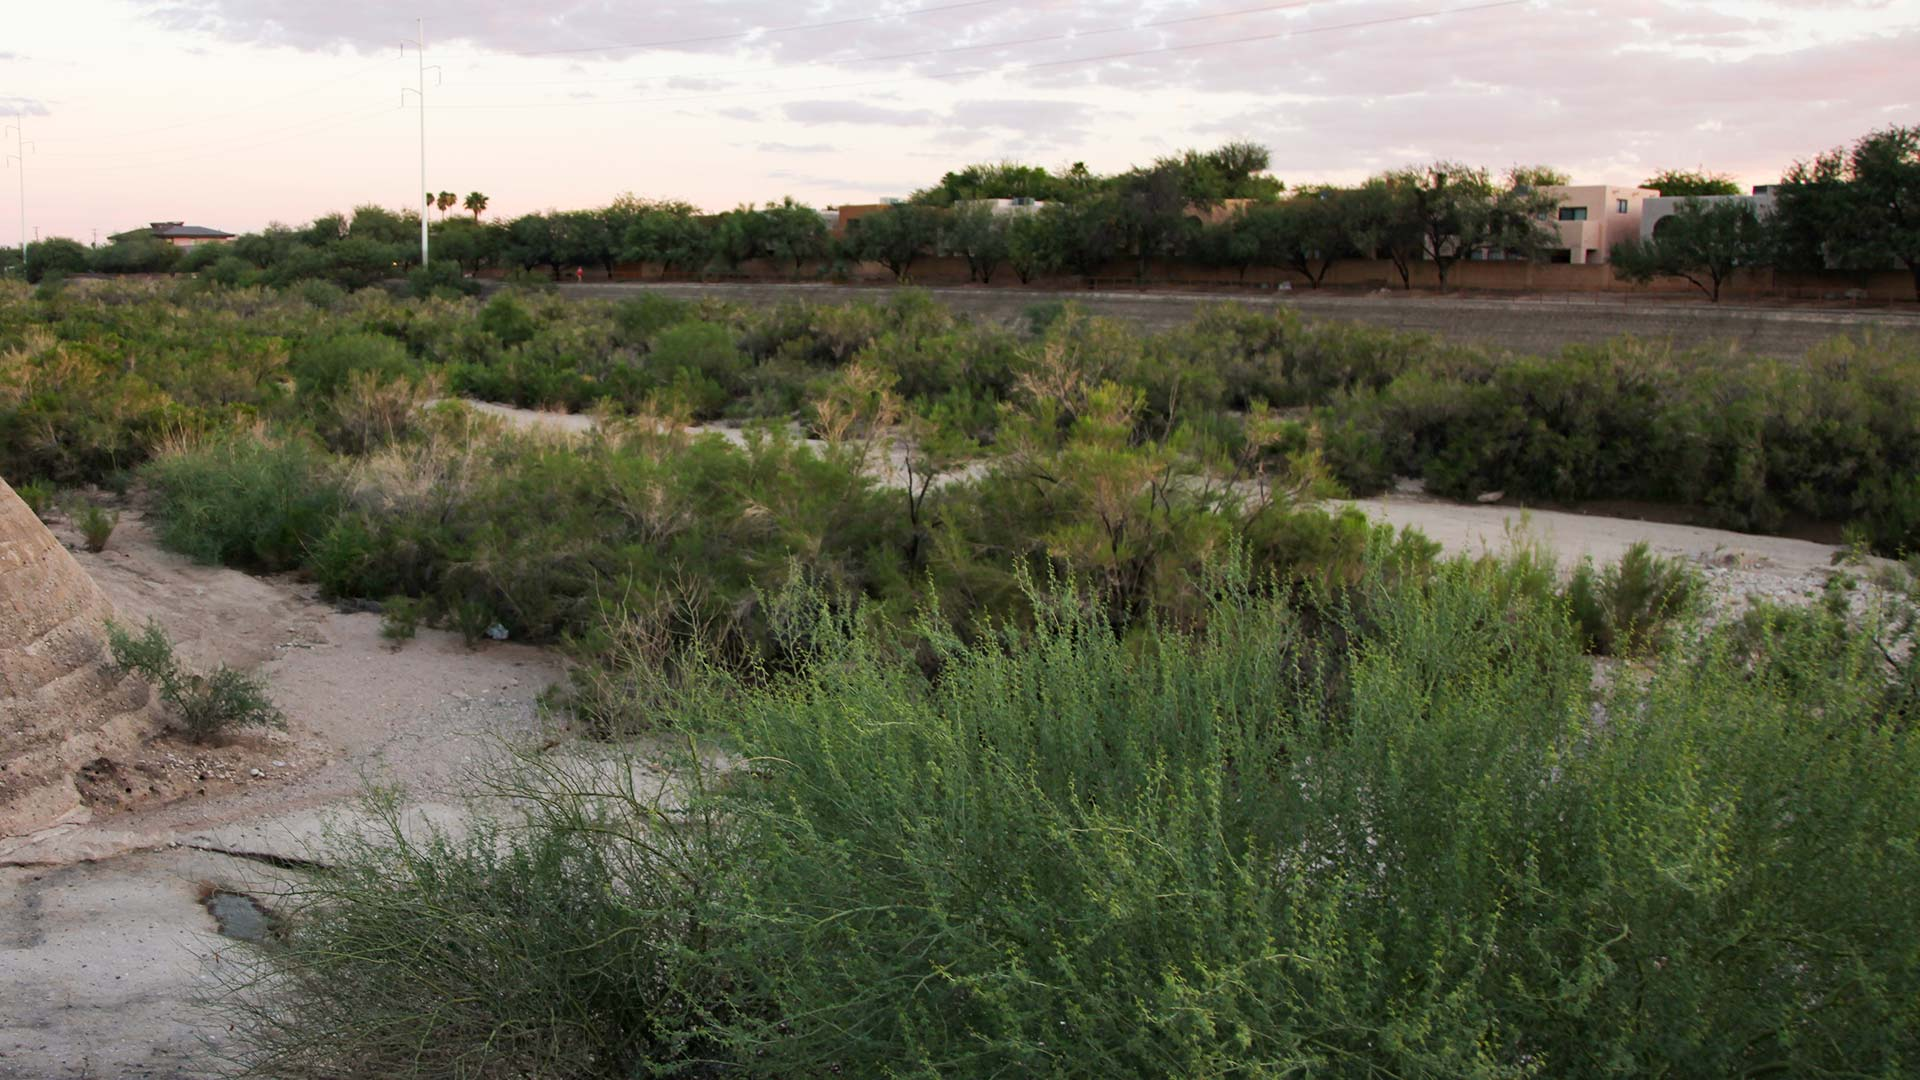 The Rillito River runs dry at the end of the rainy season in Tucson.